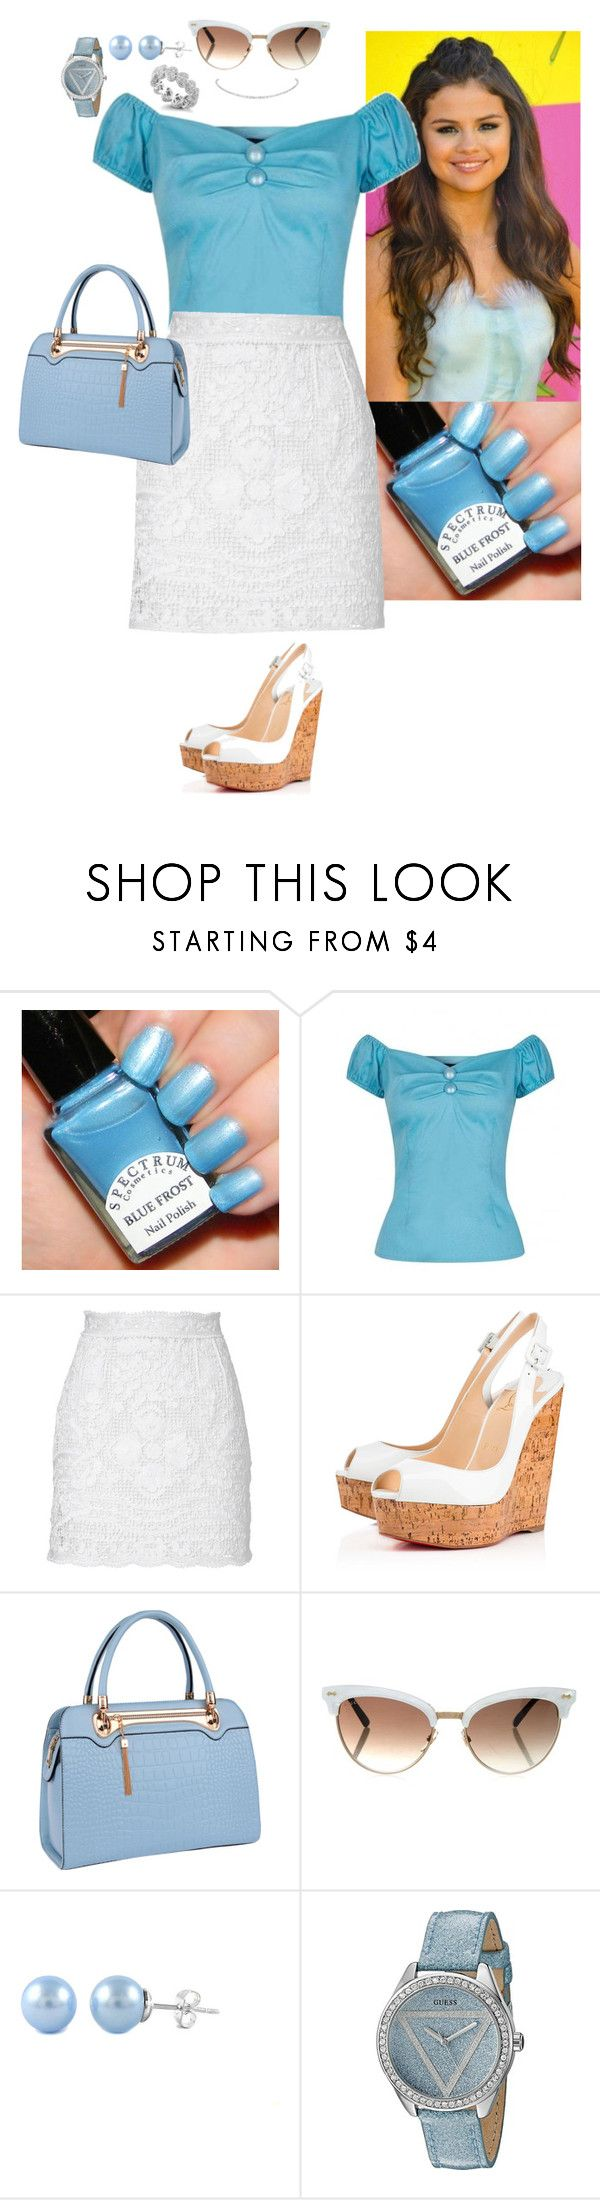 """""""Vintage Cinderella"""" by stinze on Polyvore featuring Collectif, Dolce&Gabbana, Dana Rebecca Designs, Christian Louboutin, Relaxfeel, Gucci, GUESS and vintage"""